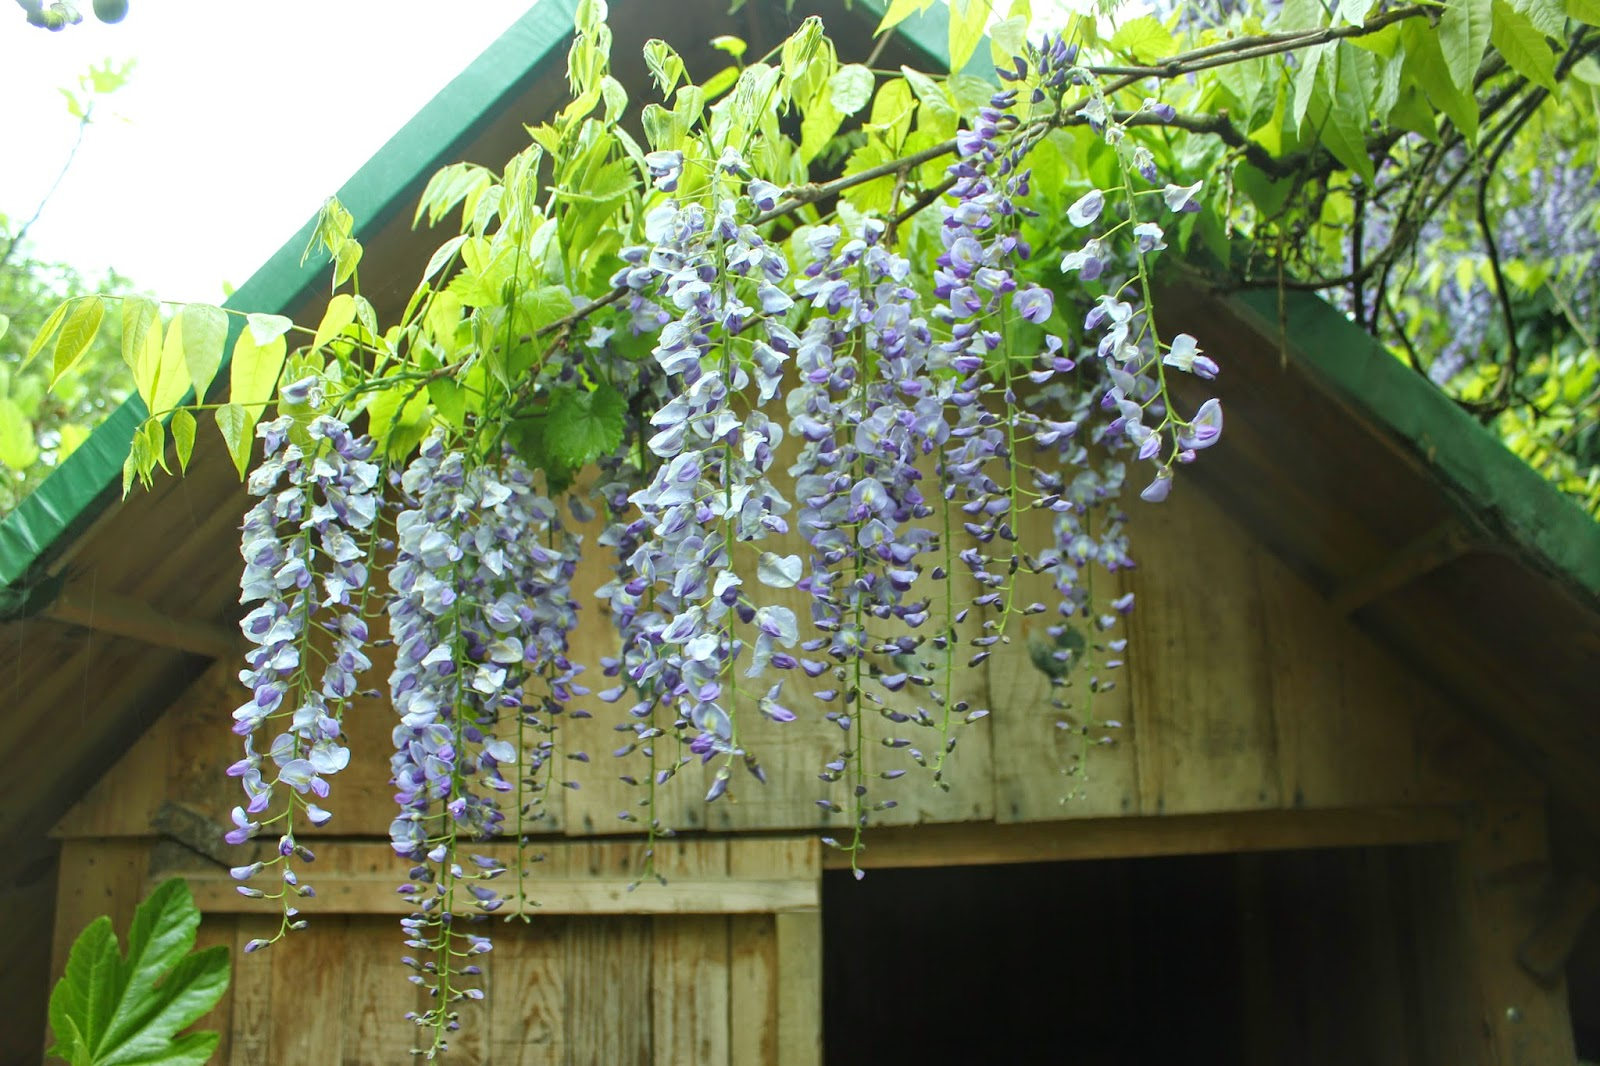 Wisteria over the hen house door in an organic garden